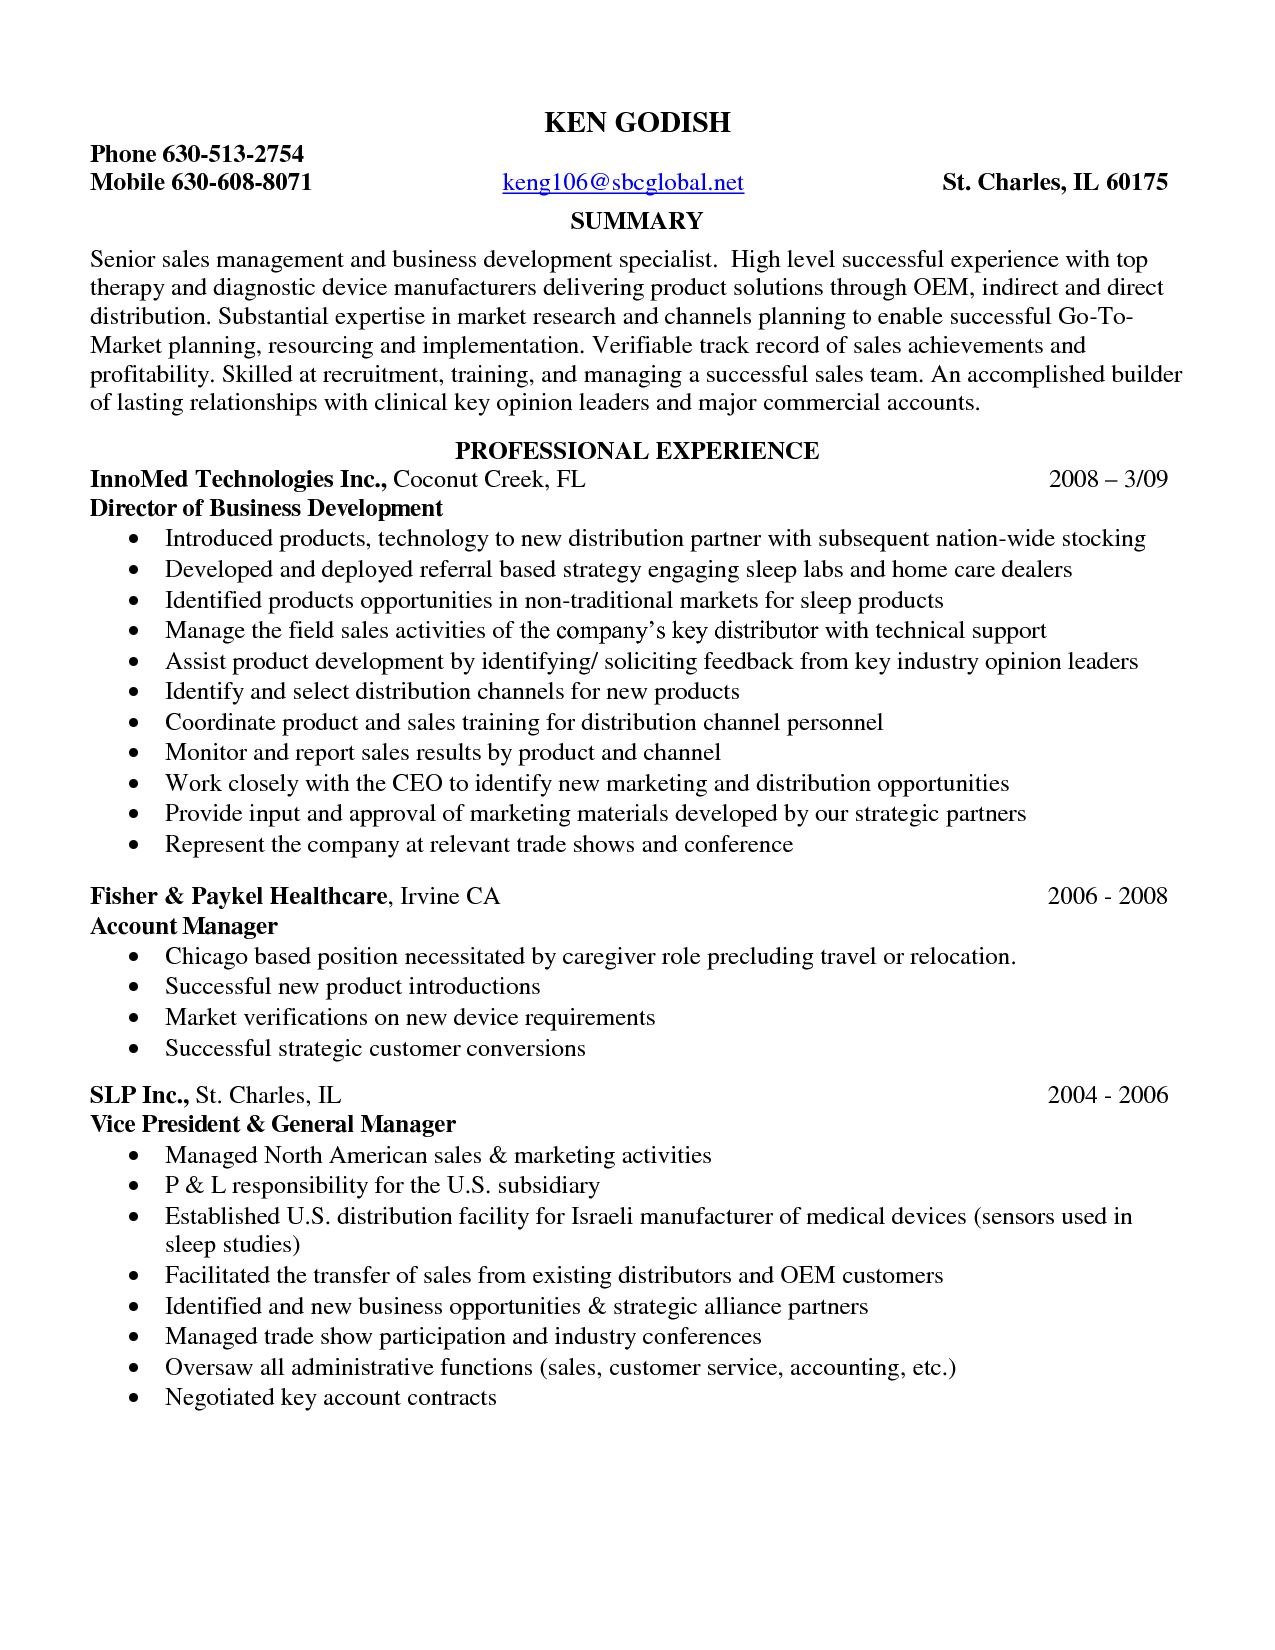 Sample Resume Entry Level Pharmaceutical Sales Sample Resume Entry ...